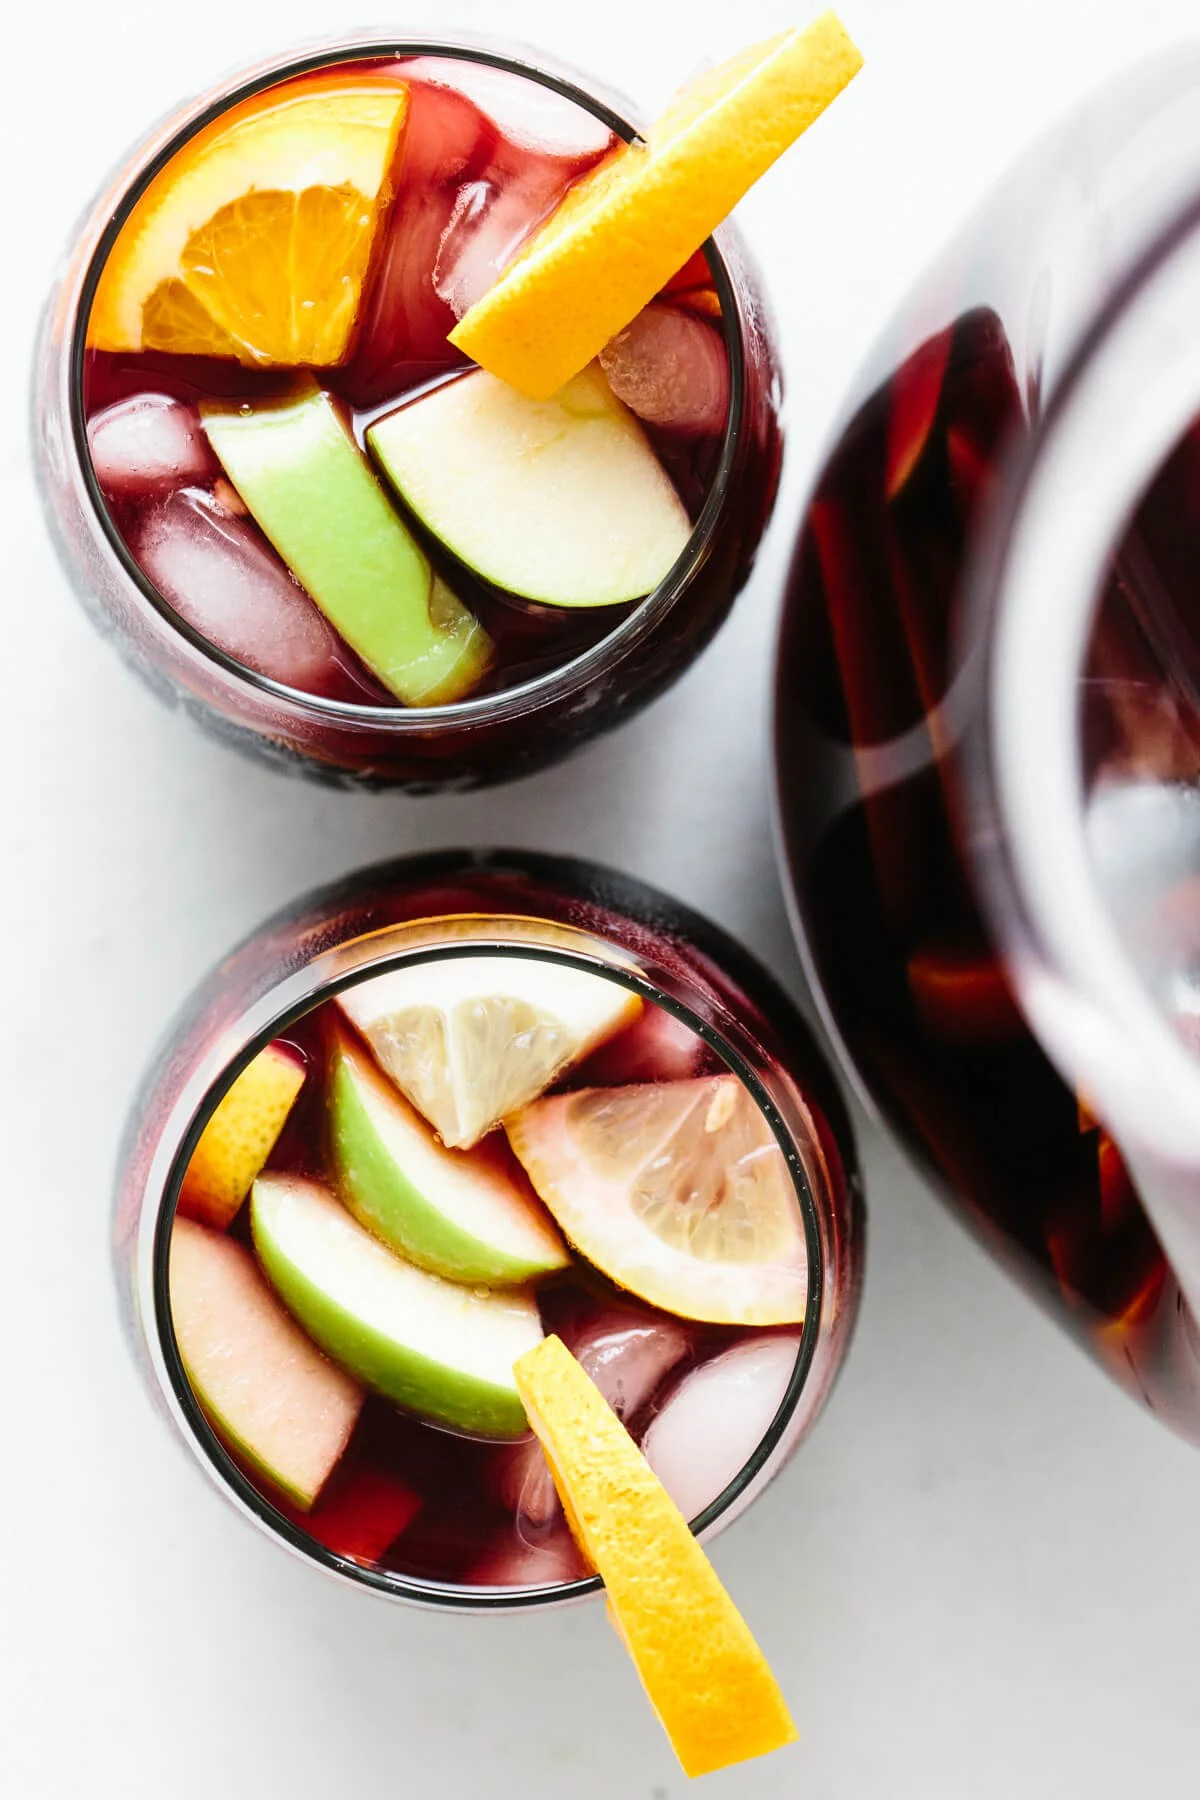 Top down view of two glasses of sangria.